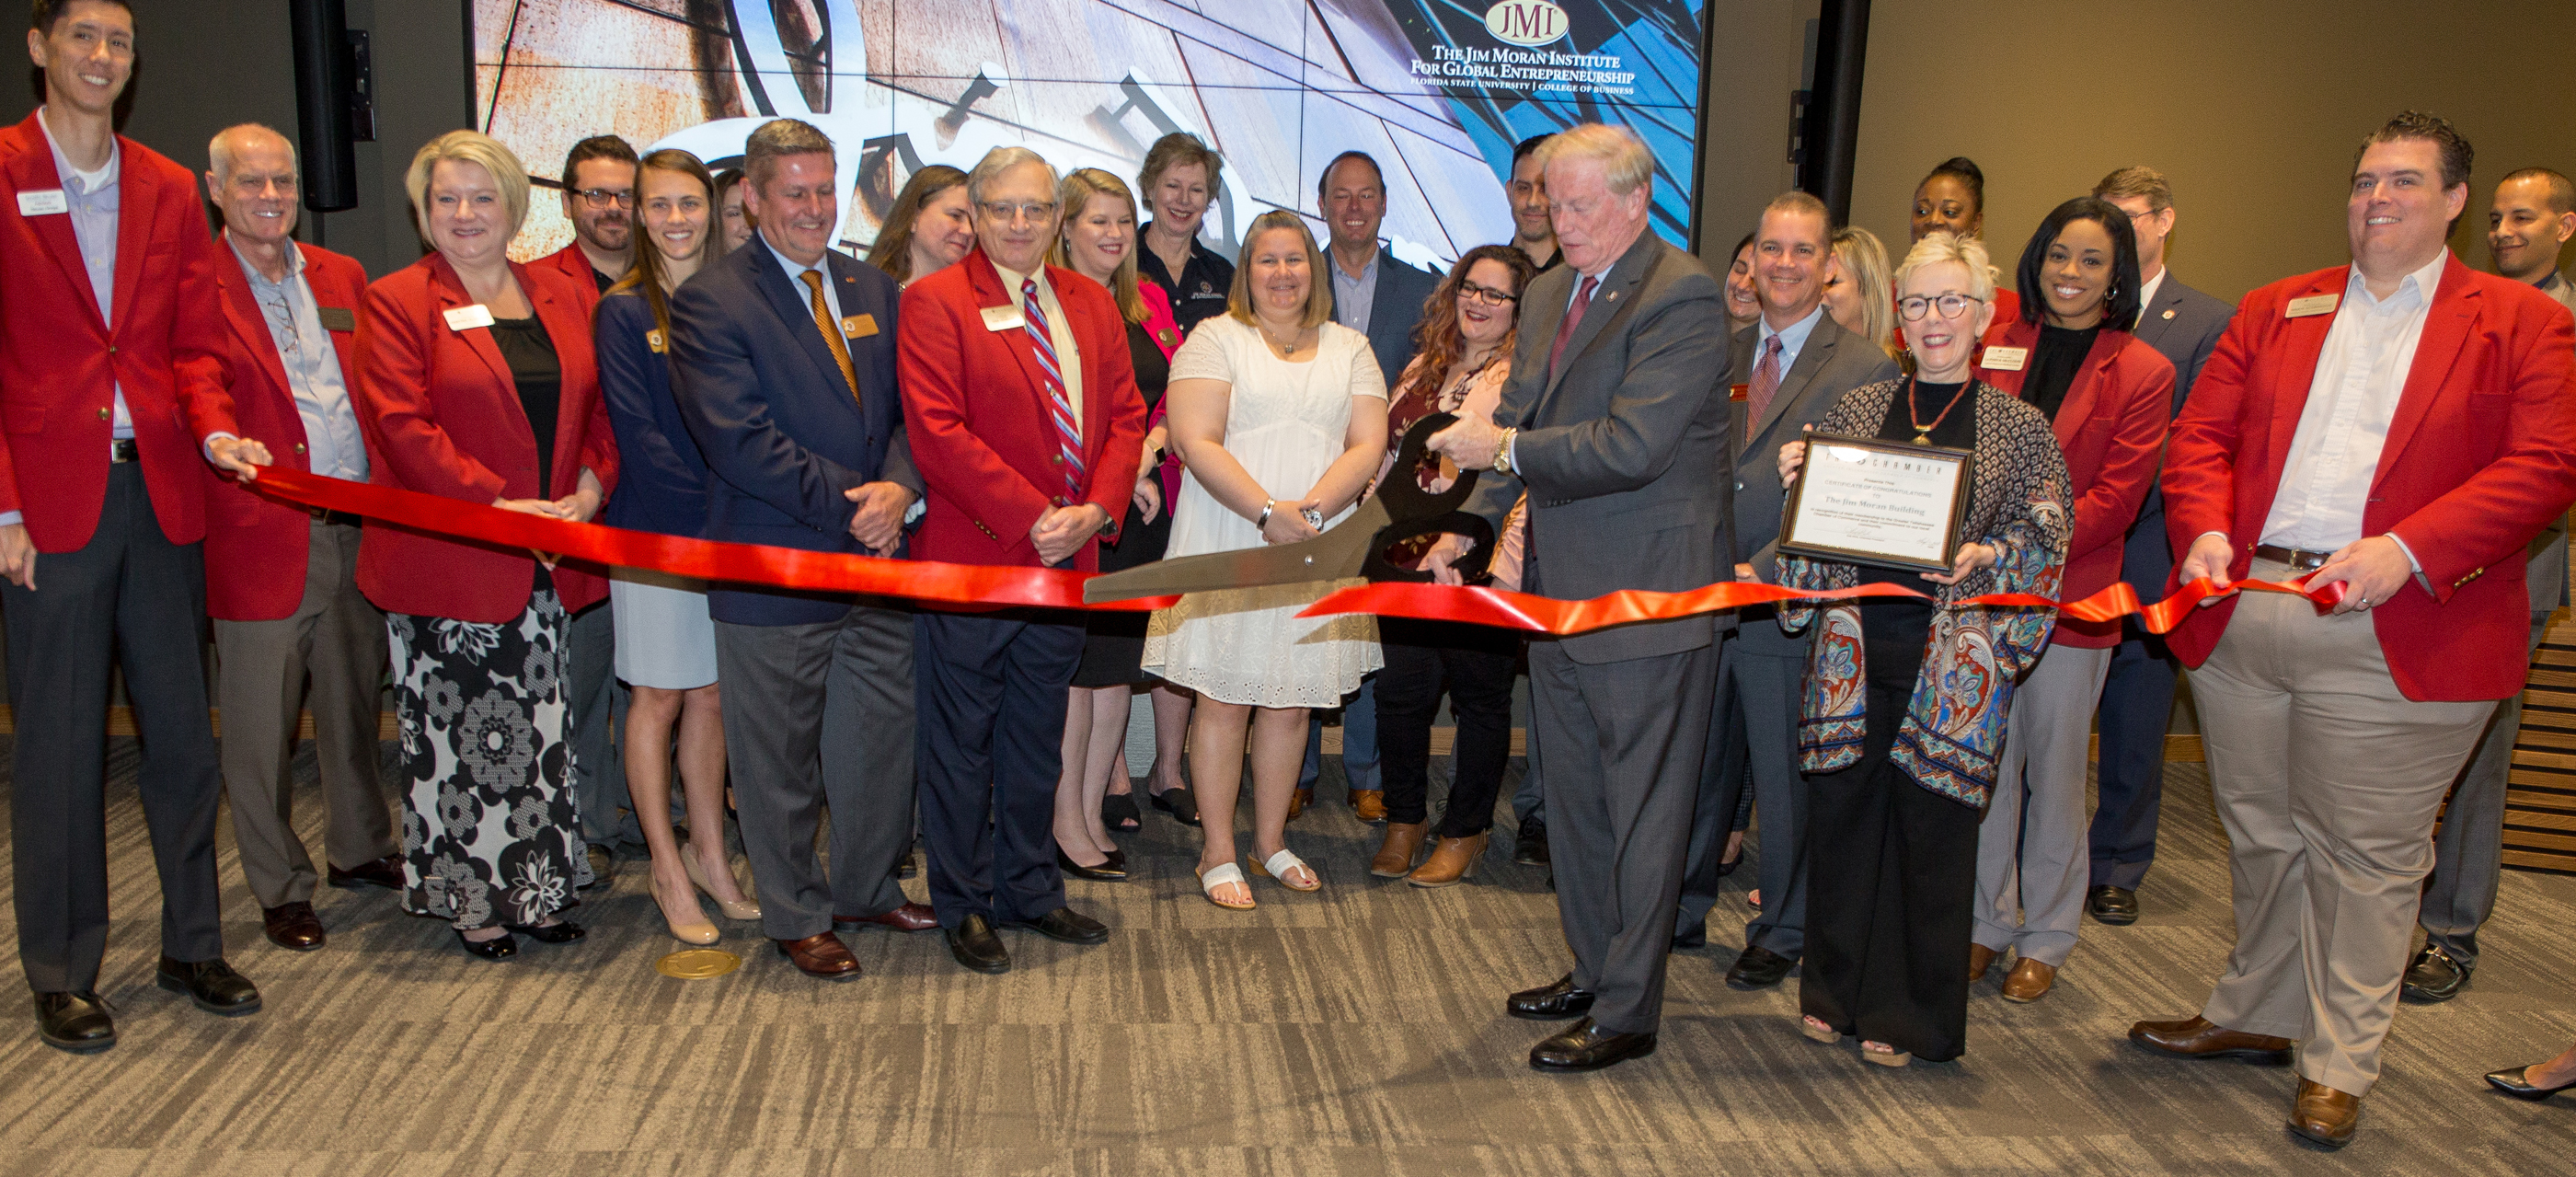 Ribbon Cutting For New Web.jpg